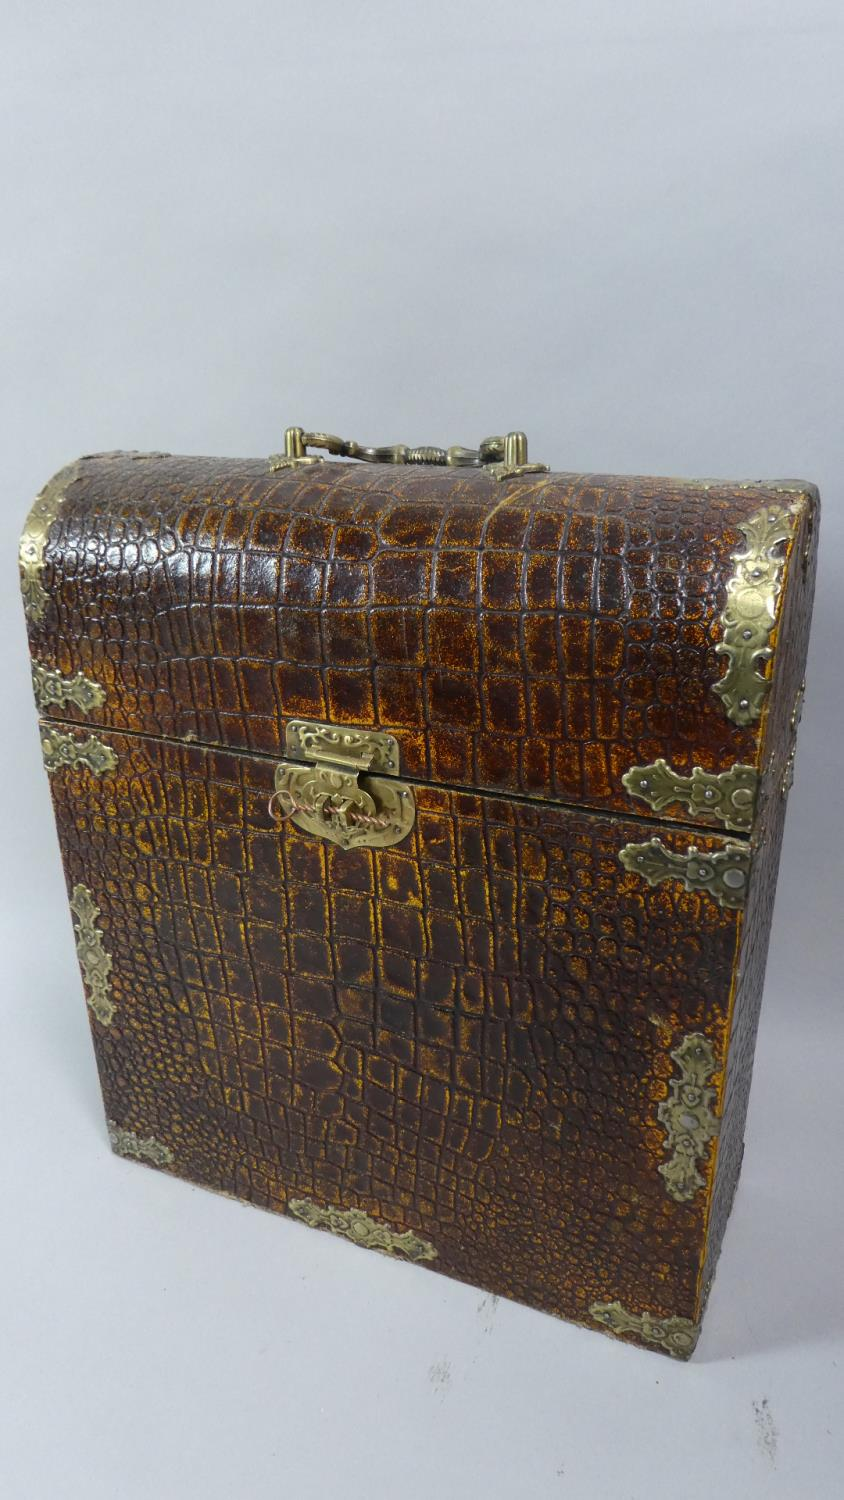 Lot 48 - A Faux Crocodile Skin Dome Top Wooden Box with Brass Clasp and Carrying Handle, 36cm High